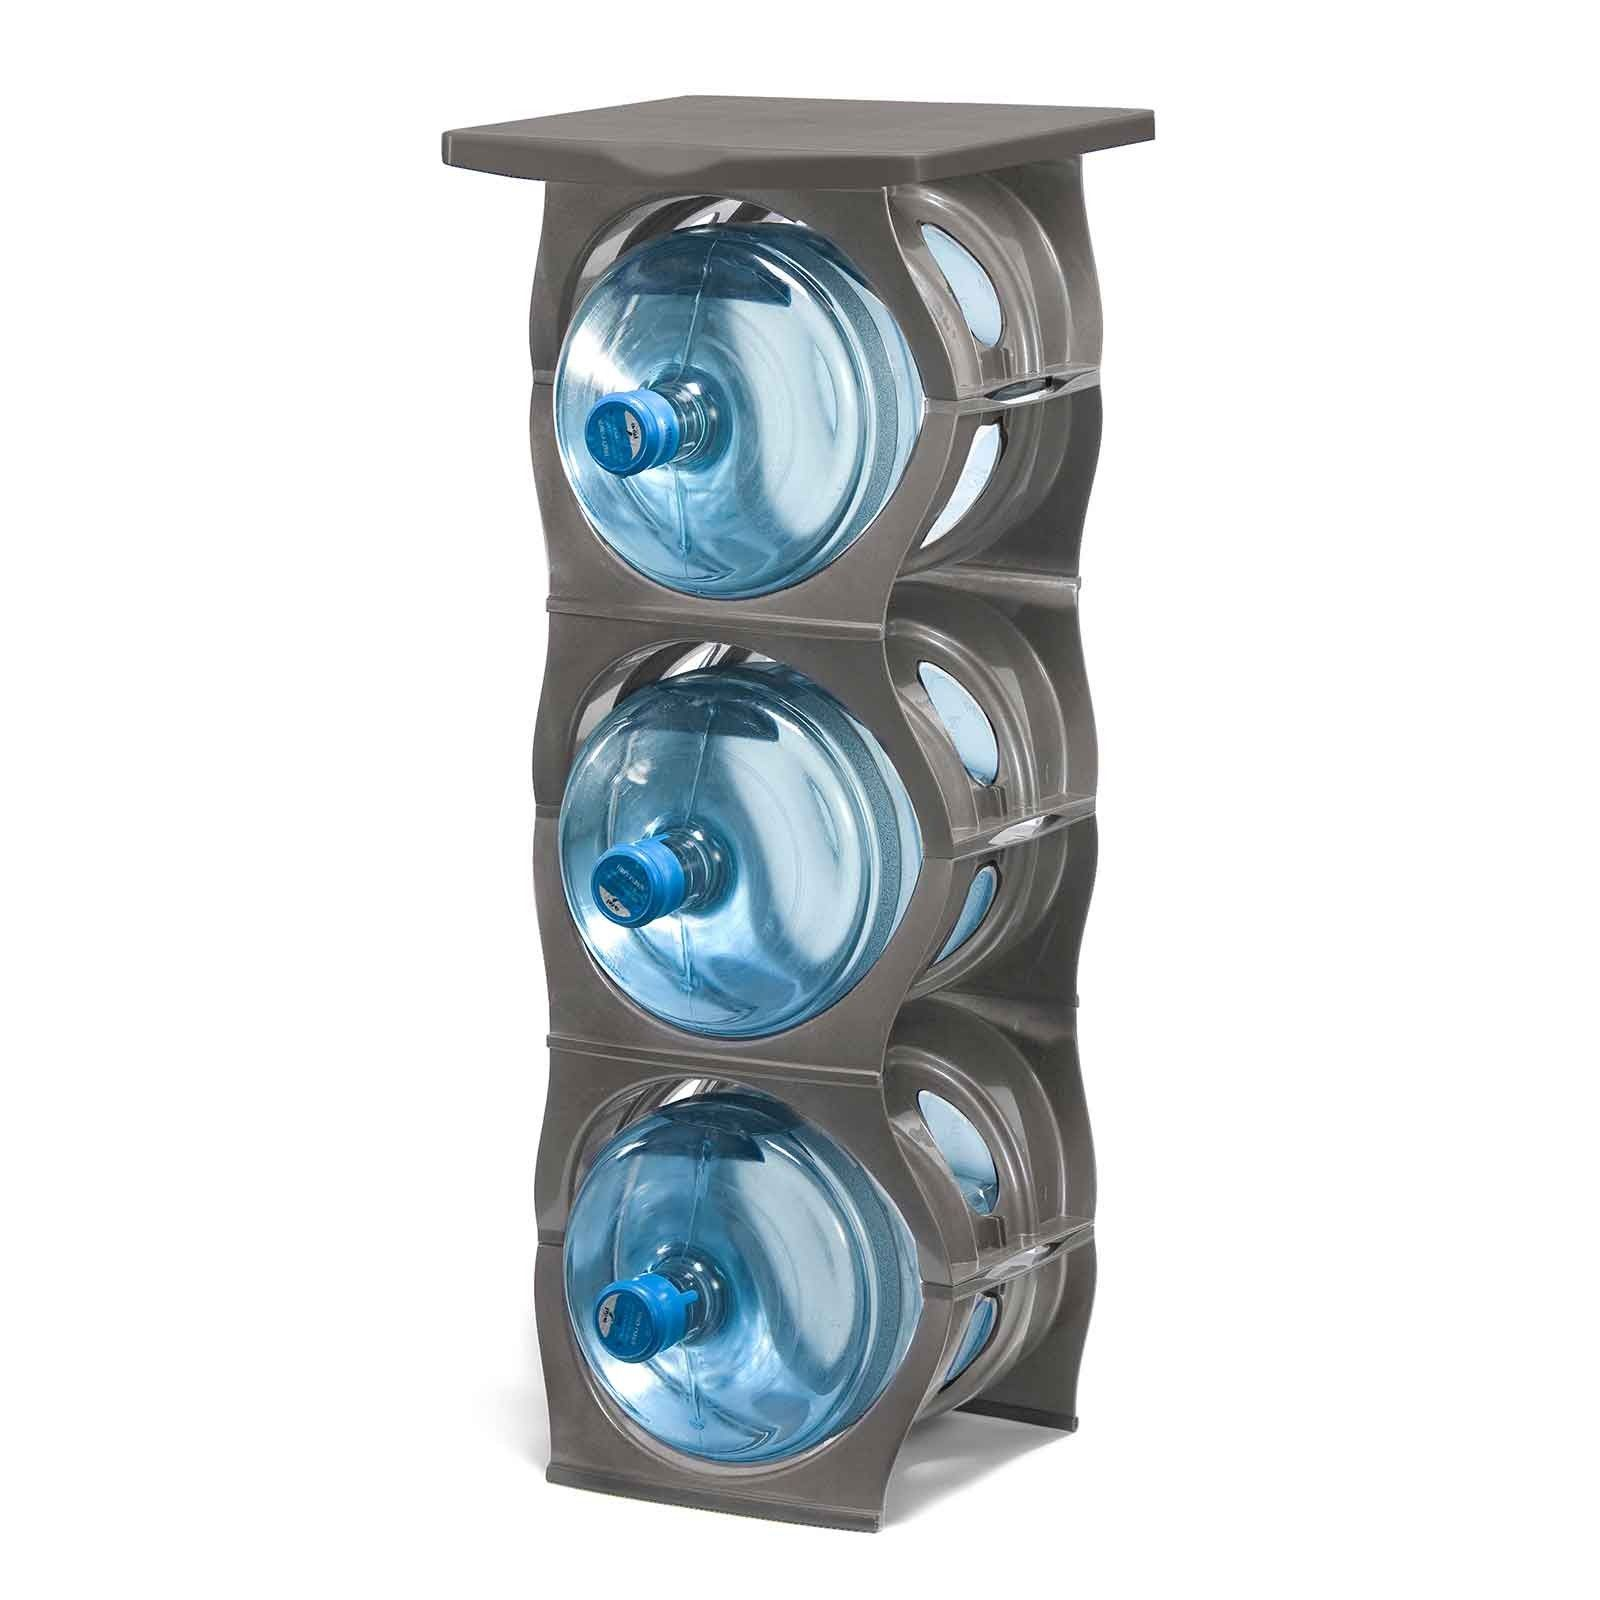 U Stack Water Bottle Storage Rack Holds Three 5 Gallon Bottles For Water Coolers 3 Bottle Water Bottle Storage Water Bottle Storage Rack Bottle Storage Rack